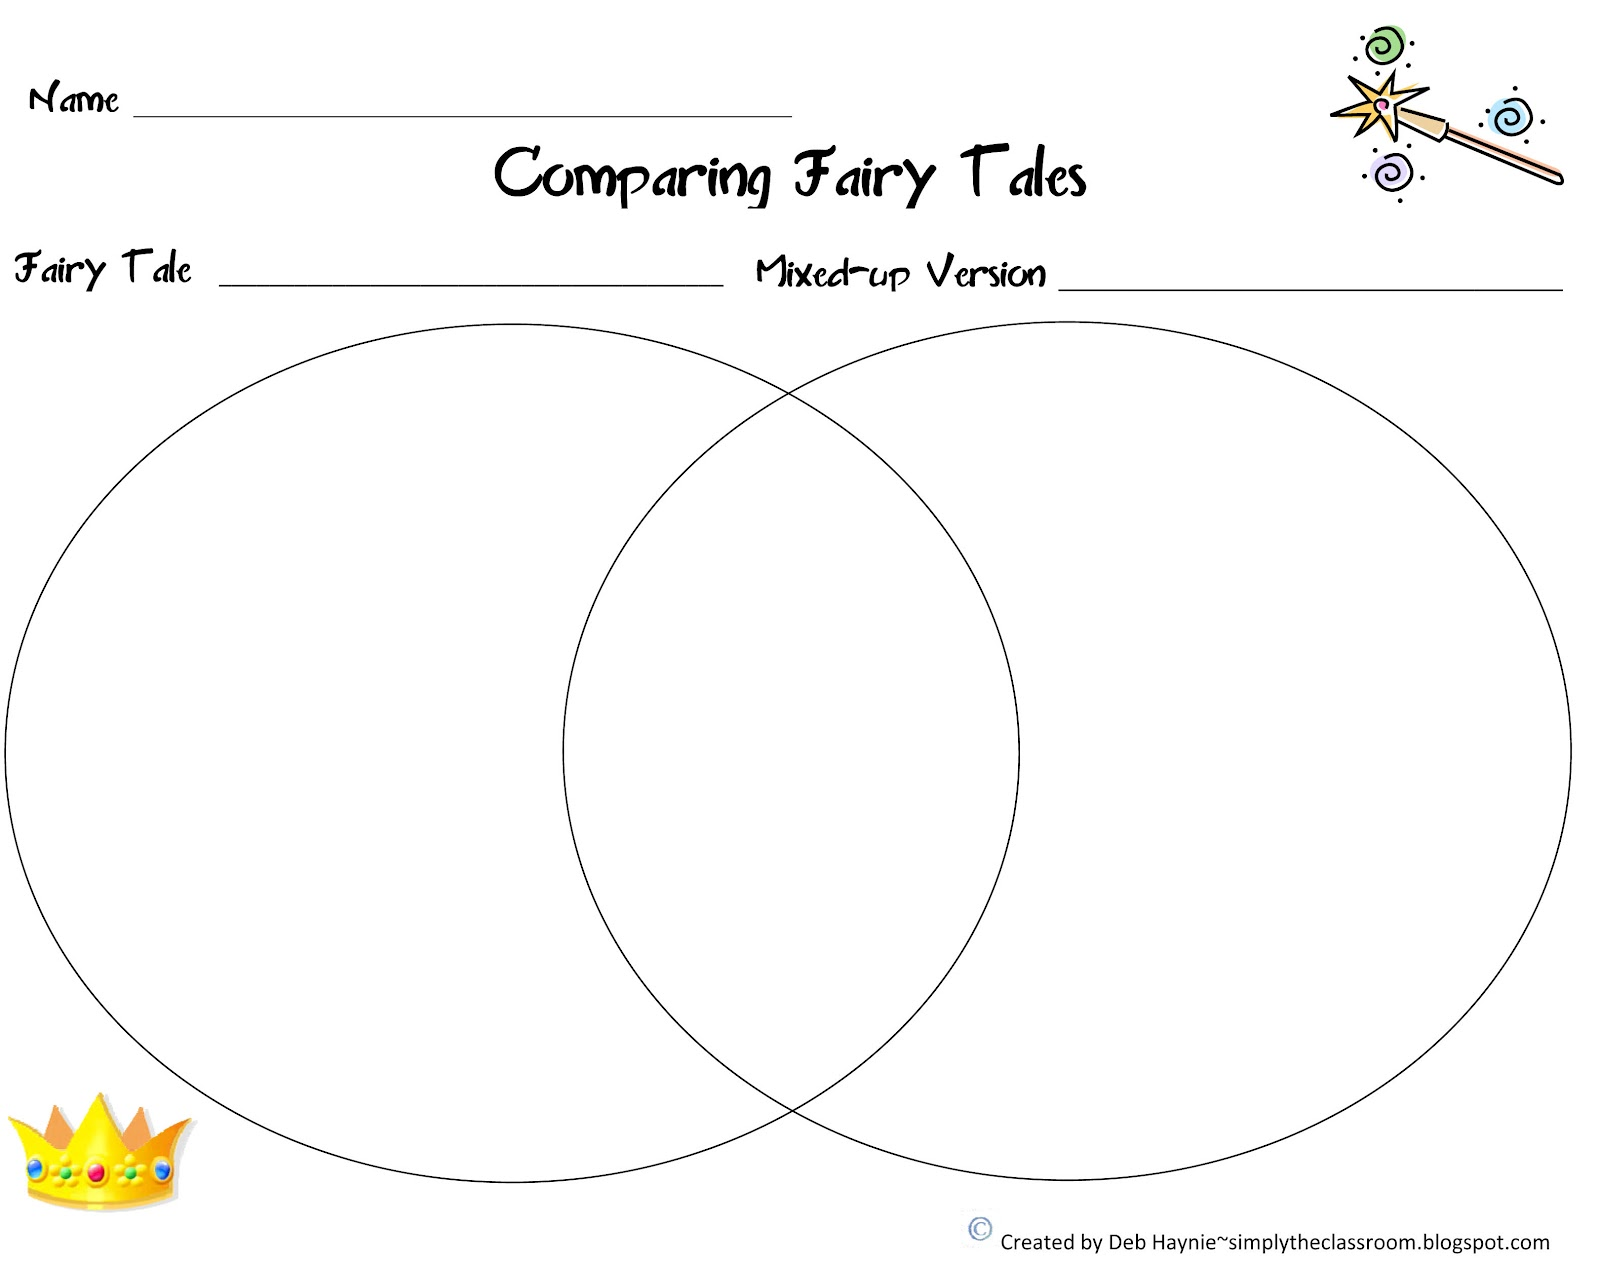 Comparecontrast venn diagram fairy tales are like the ocean comparecontrast venn diagram pooptronica Gallery